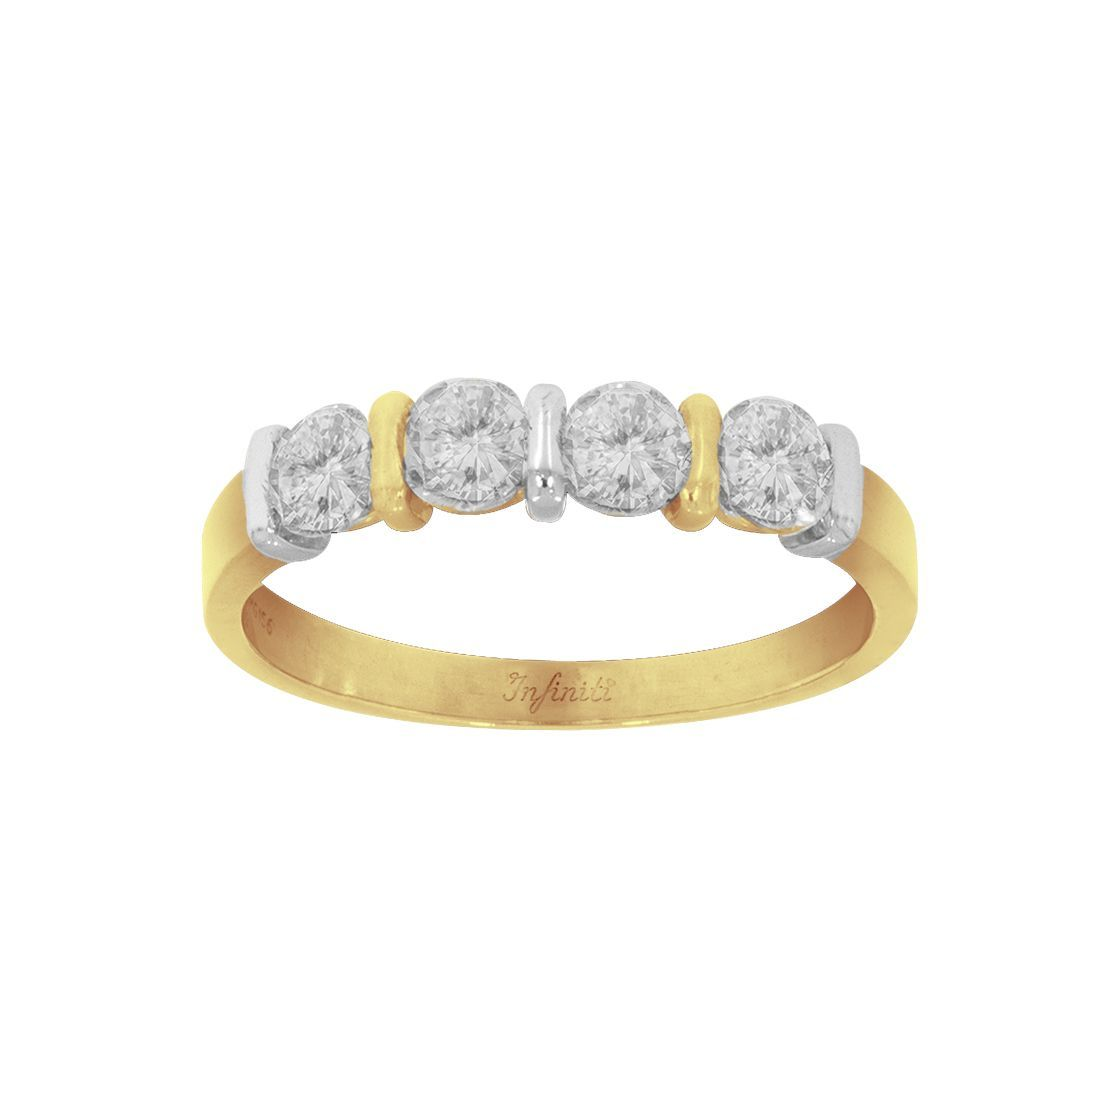 Churumbela Oro 14k, con Zirconias 4 mm